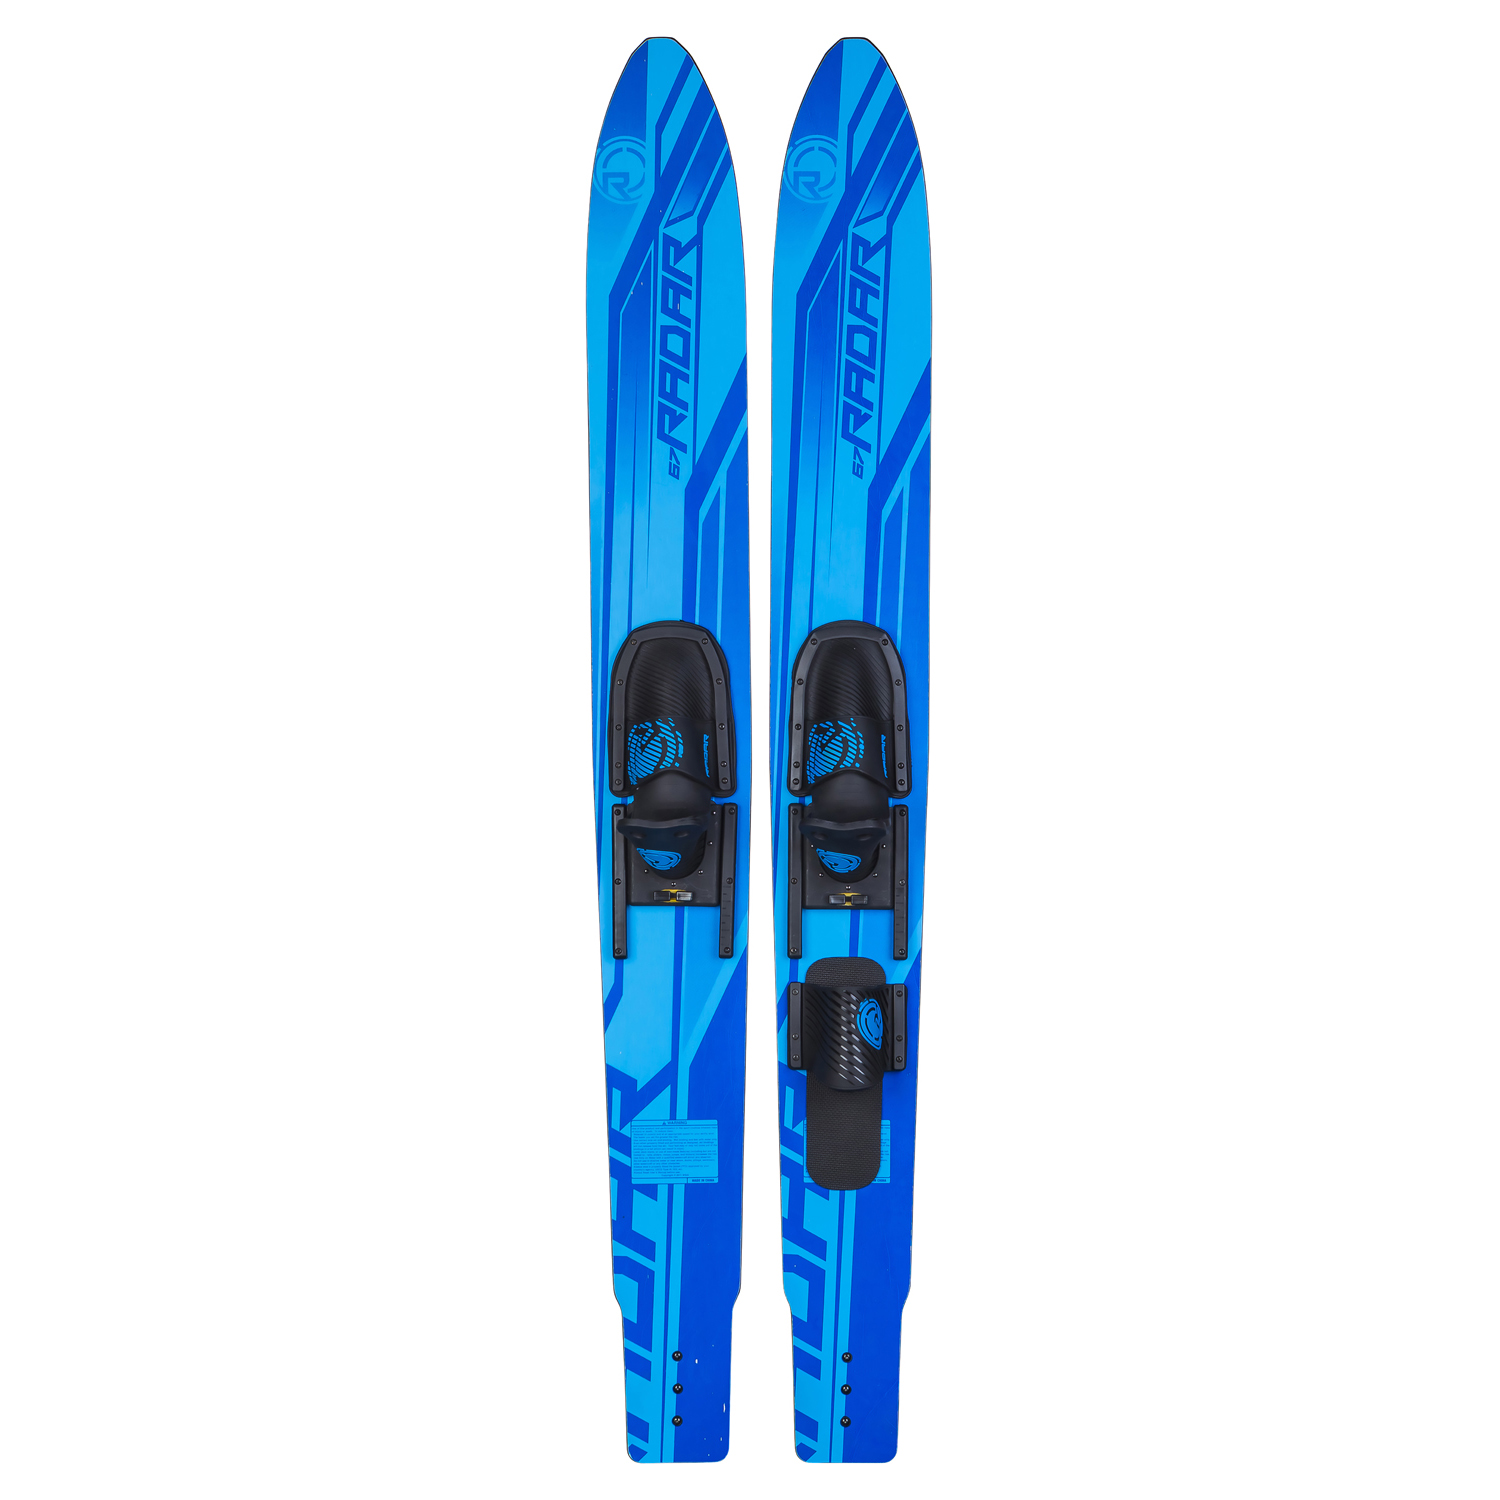 X-CALIBER 67'' COMBO EVA ADJ. X-CALIBER BINDINGS - BLUE RADAR 2018